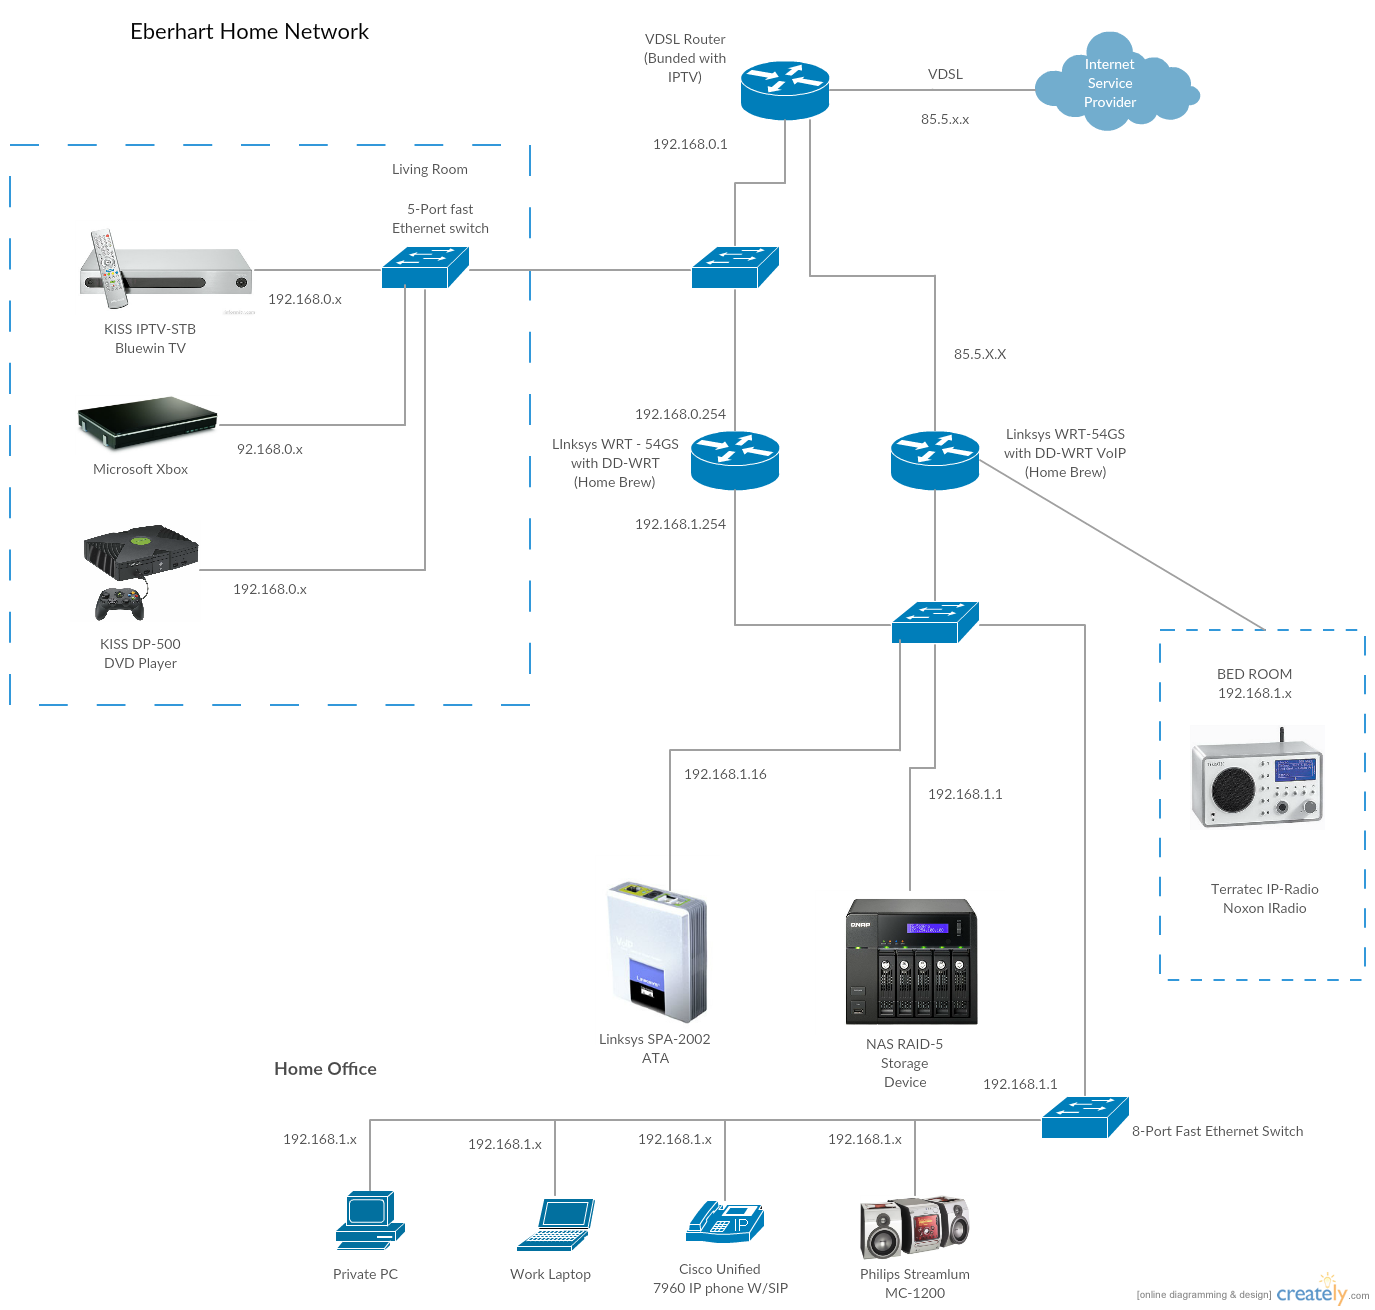 Networking drawing advanced. Cisco templates to get